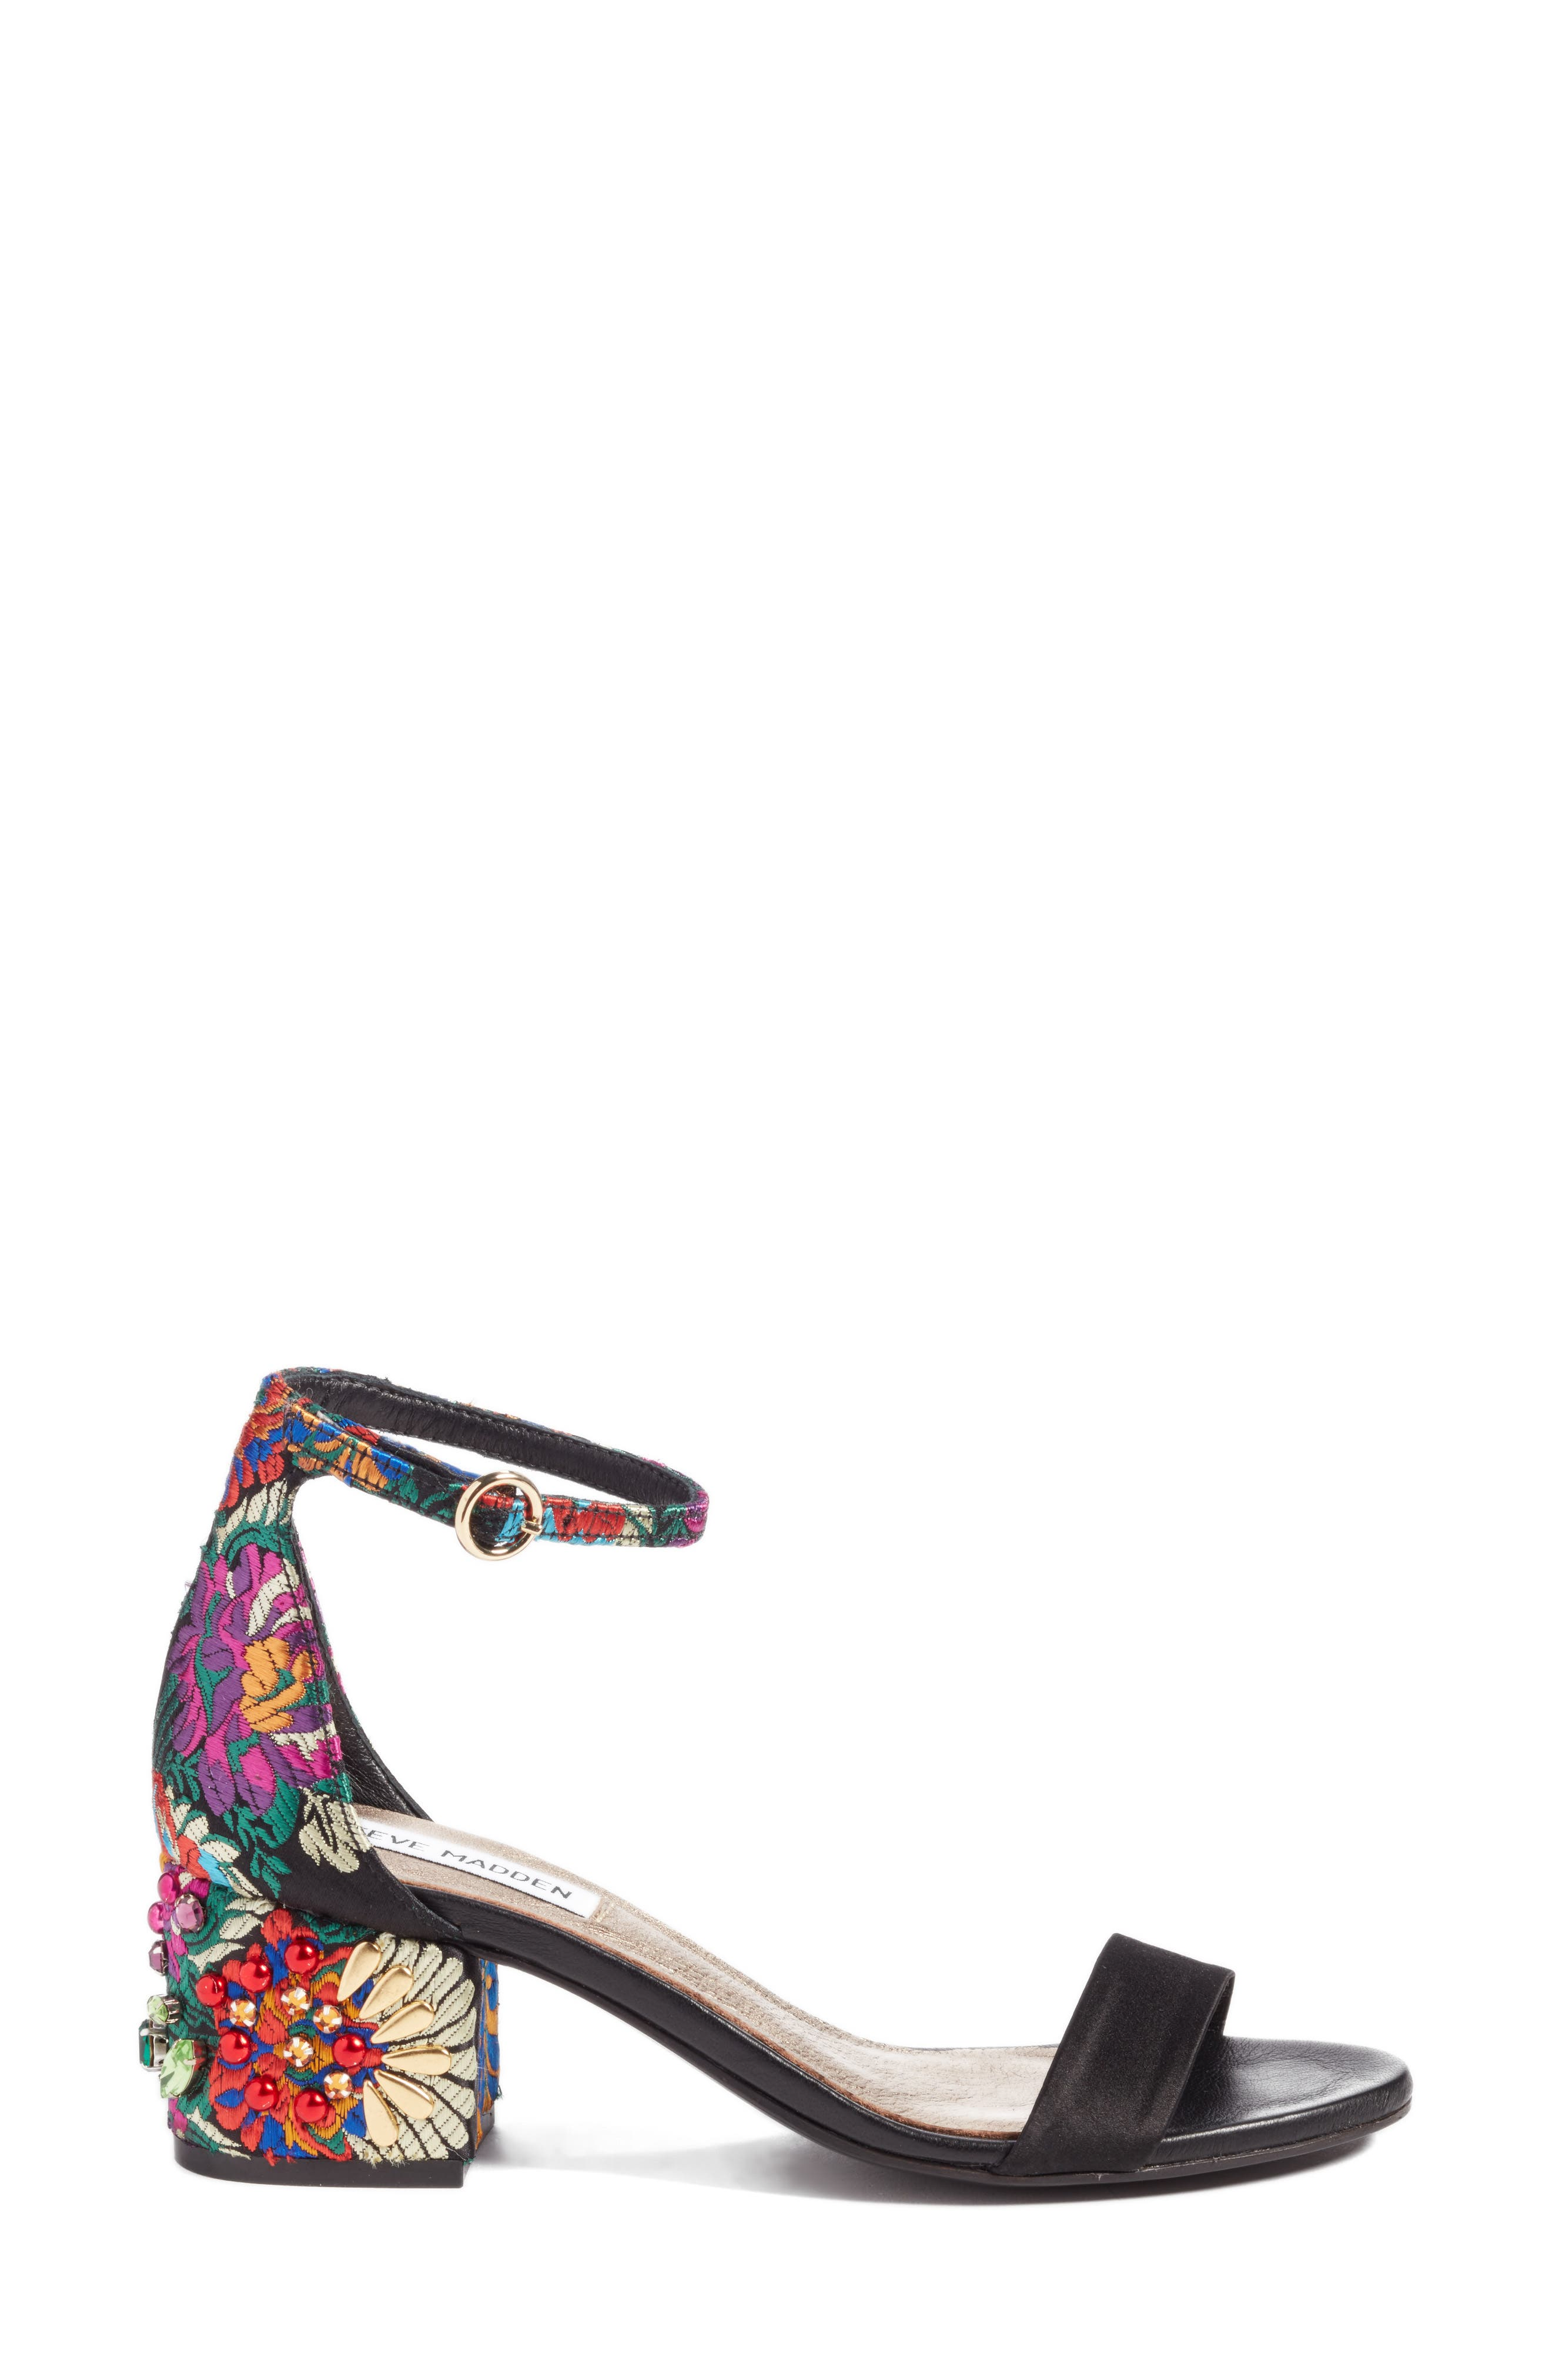 Alternate Image 3  - Steve Madden Inca Sandal (Women)